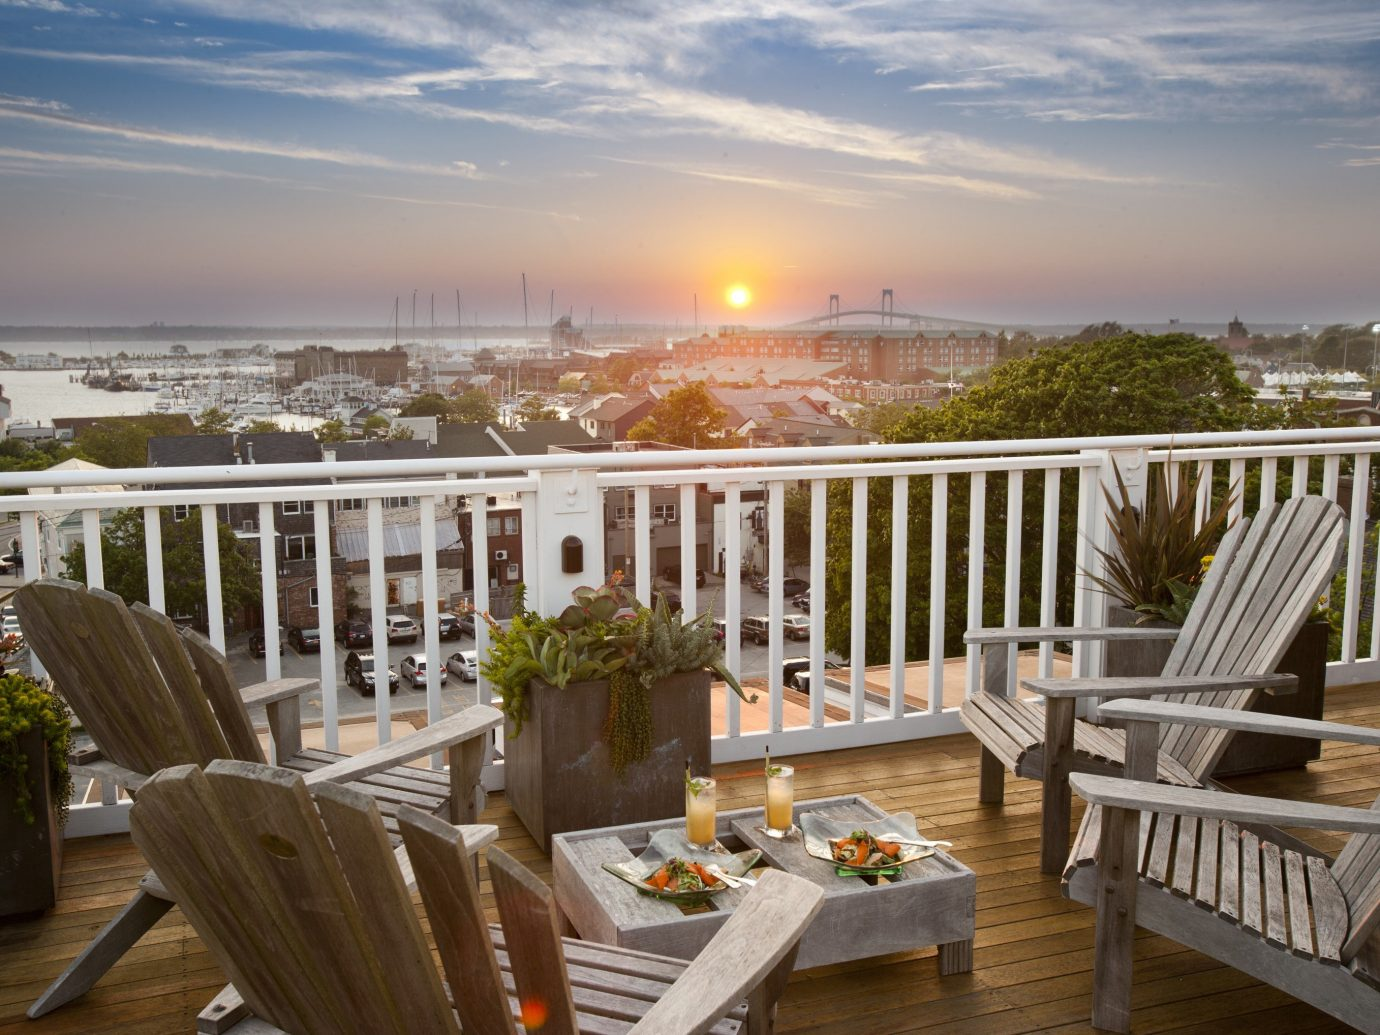 Hotels Trip Ideas sky table outdoor chair property building vacation estate Deck overlooking wooden porch home real estate Resort outdoor structure Dining Villa set dining table